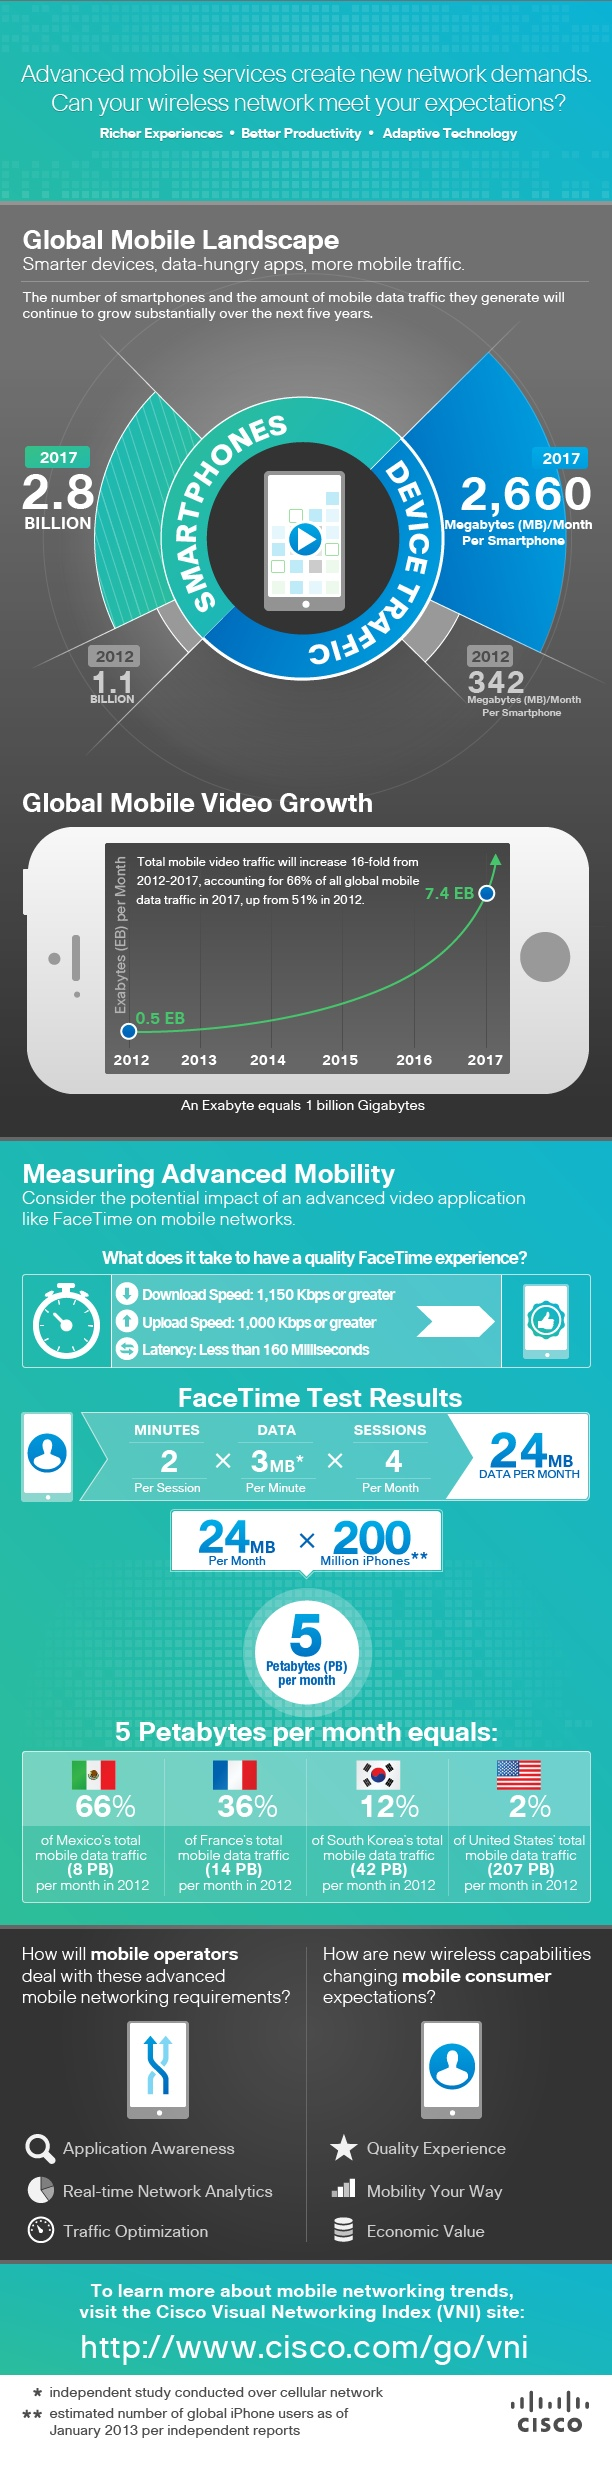 Discover how advanced mobile services like FaceTime create new network demands that impact mobile operators and consumers. Check out this inforgraphic that summarizes the global mobile landscape, global mobile video growth, and much more based on the Cisco Visual Networking Index (VNI) Global Mobile Data Traffic Forecast Update, 2012-2017.     For more info, visit http://www.cisco.com/go/vni